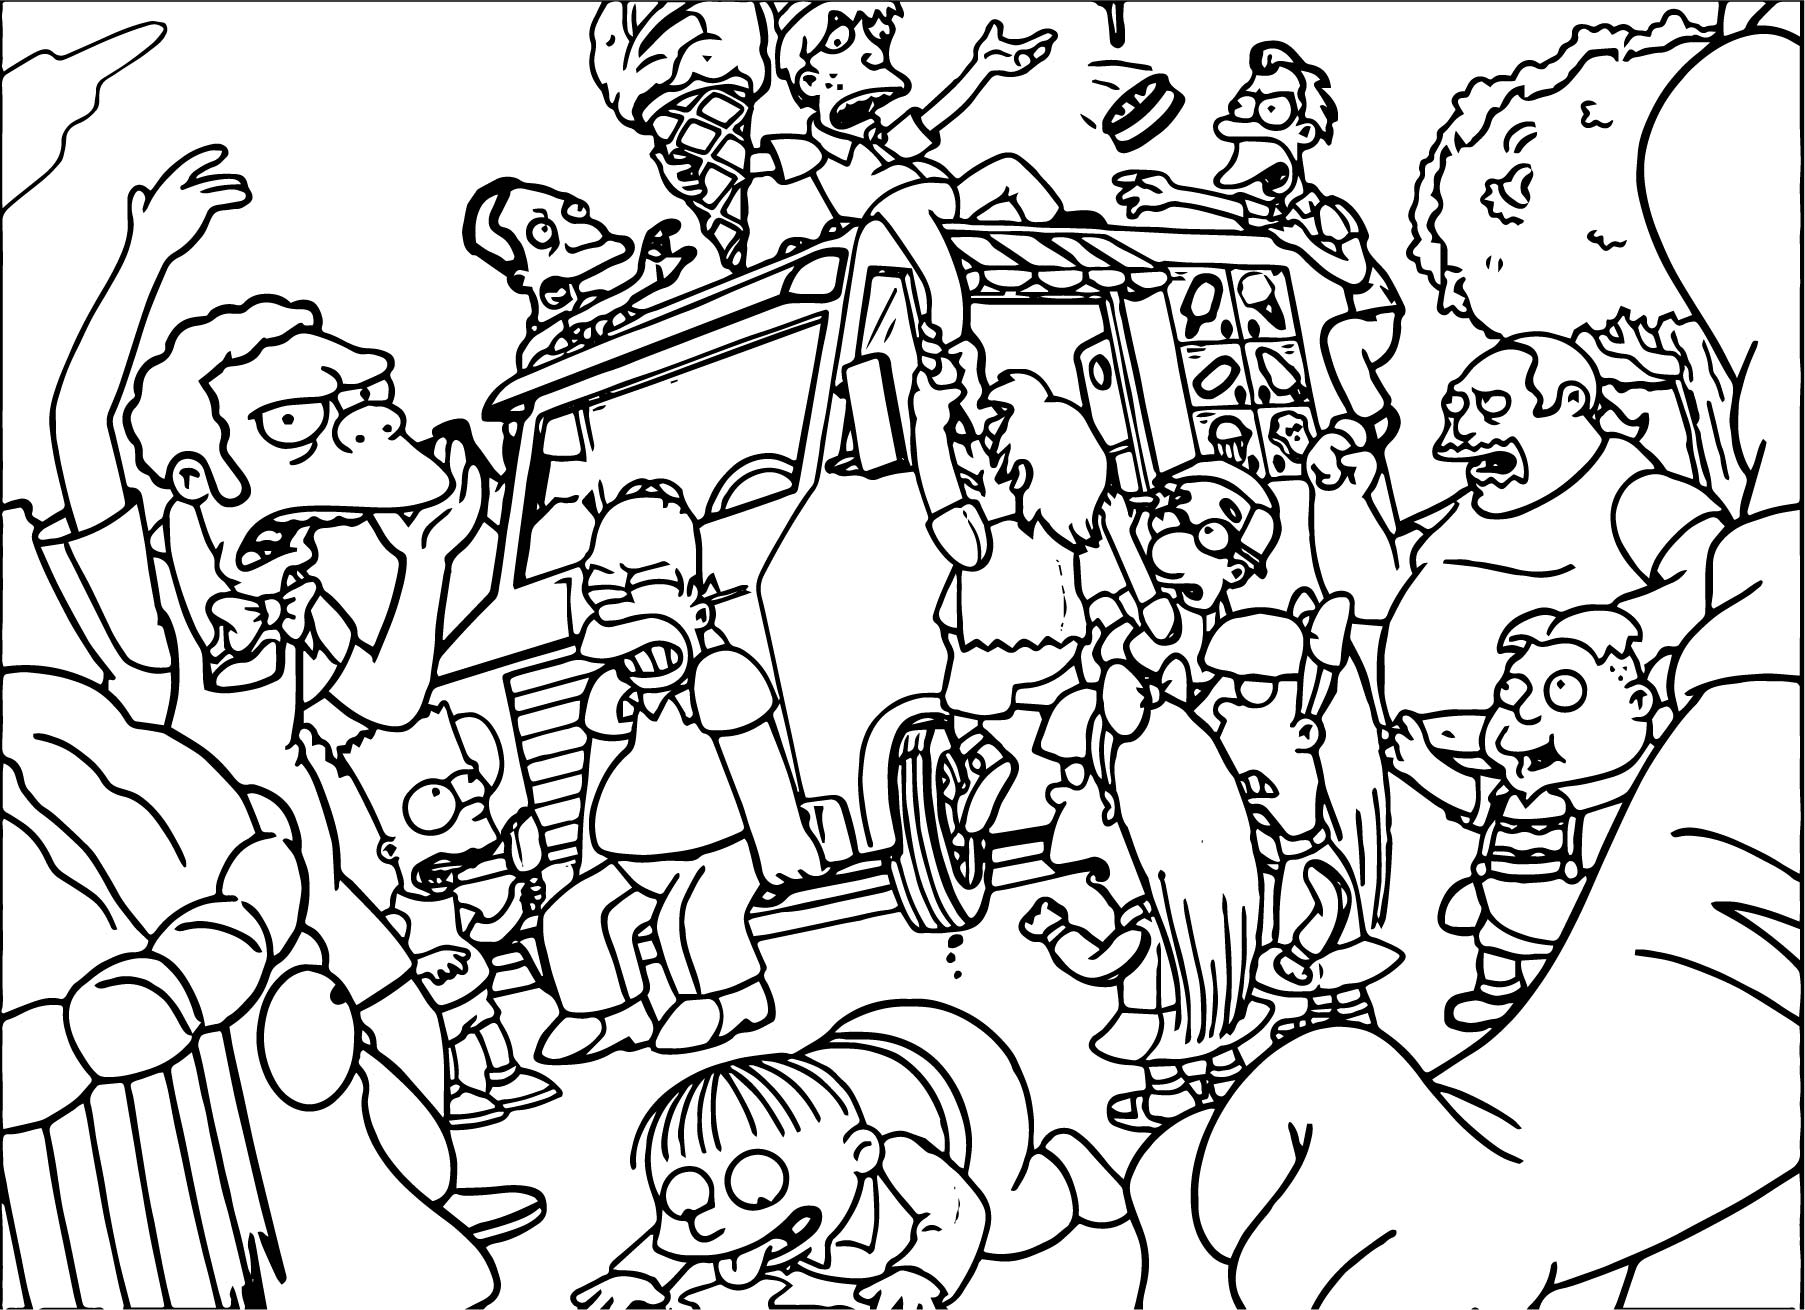 ice cream riot the simpsons coloring page - The Simpsons Colouring Pages